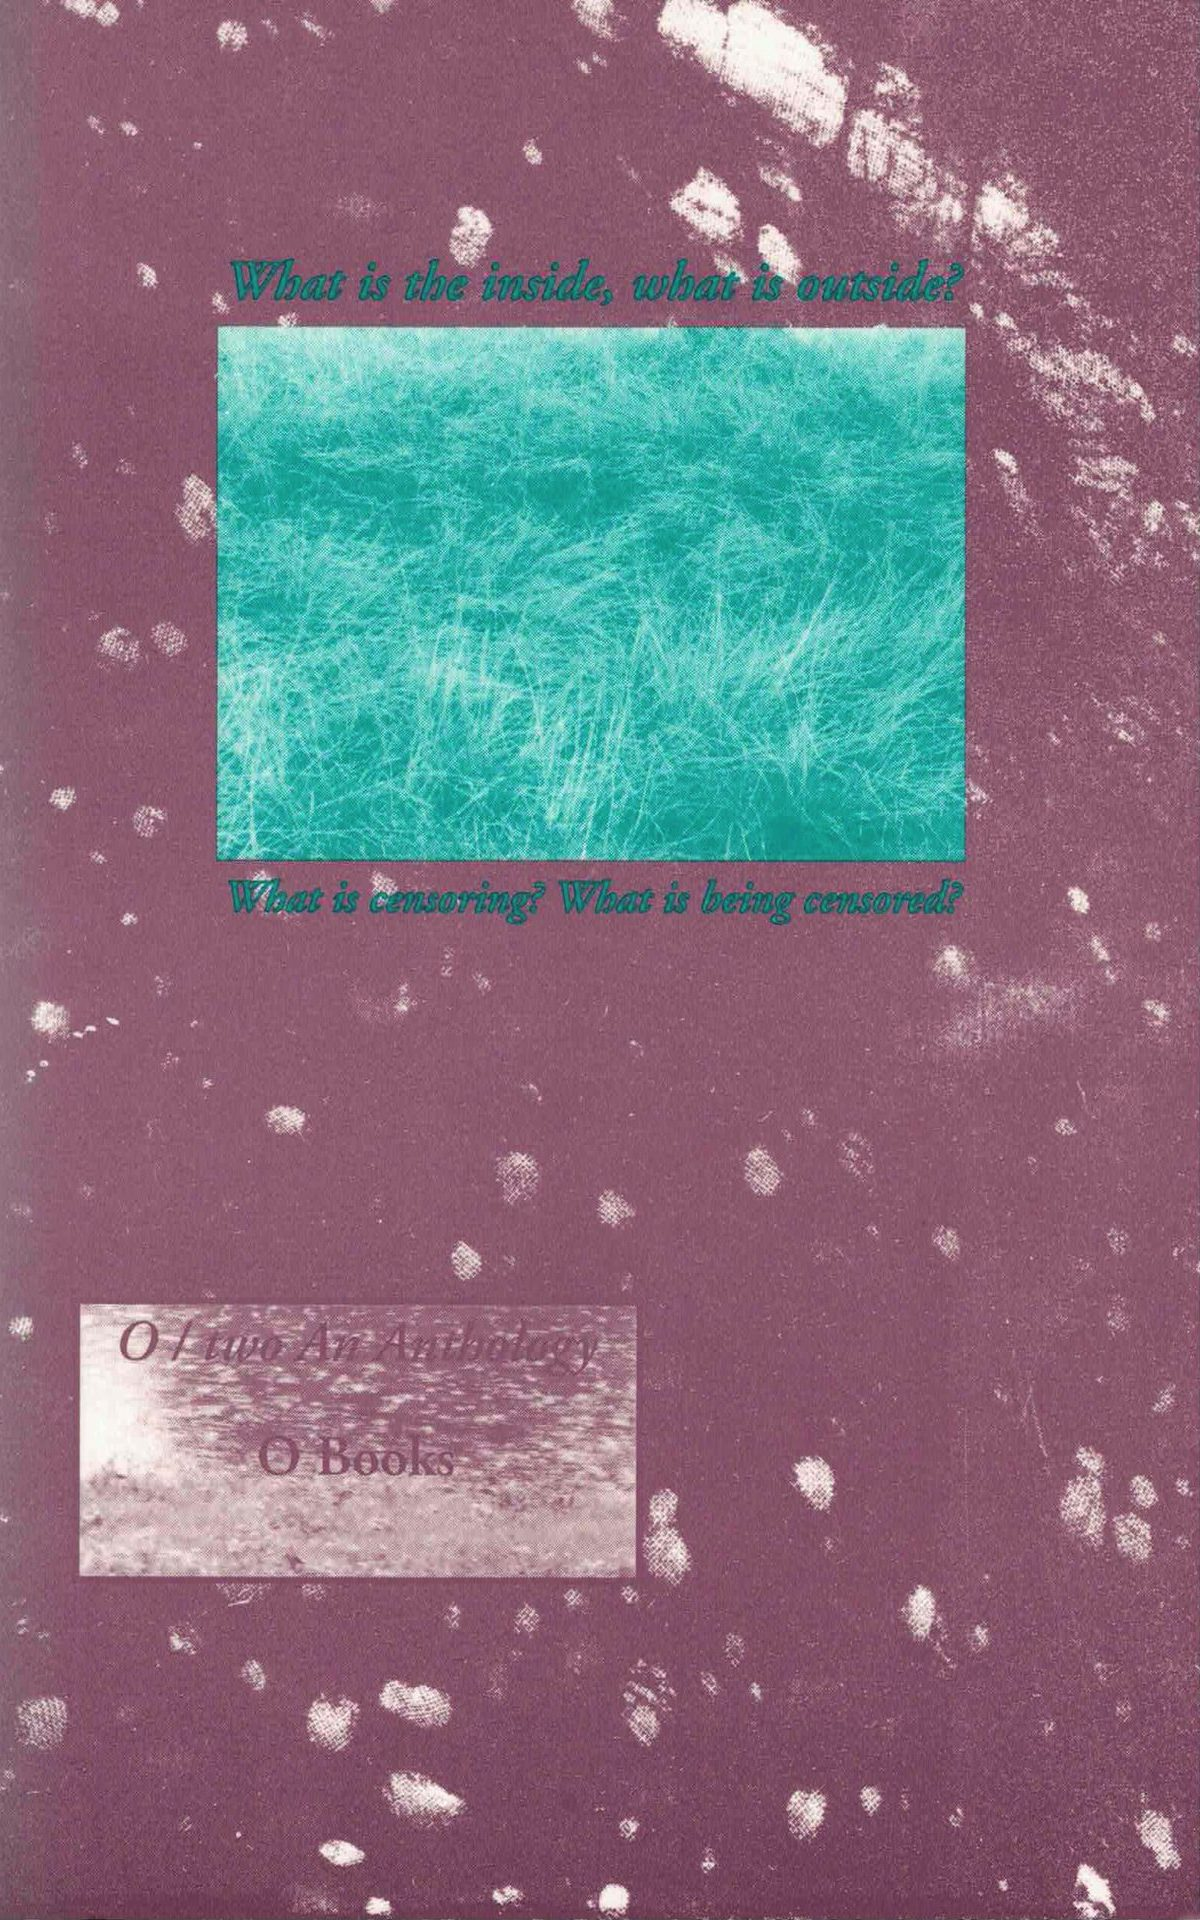 cover of O Two anthology edited by Leslie Scalapino, bright teal rectangle with scratch marks at top center with light brown-purple background and white smudges